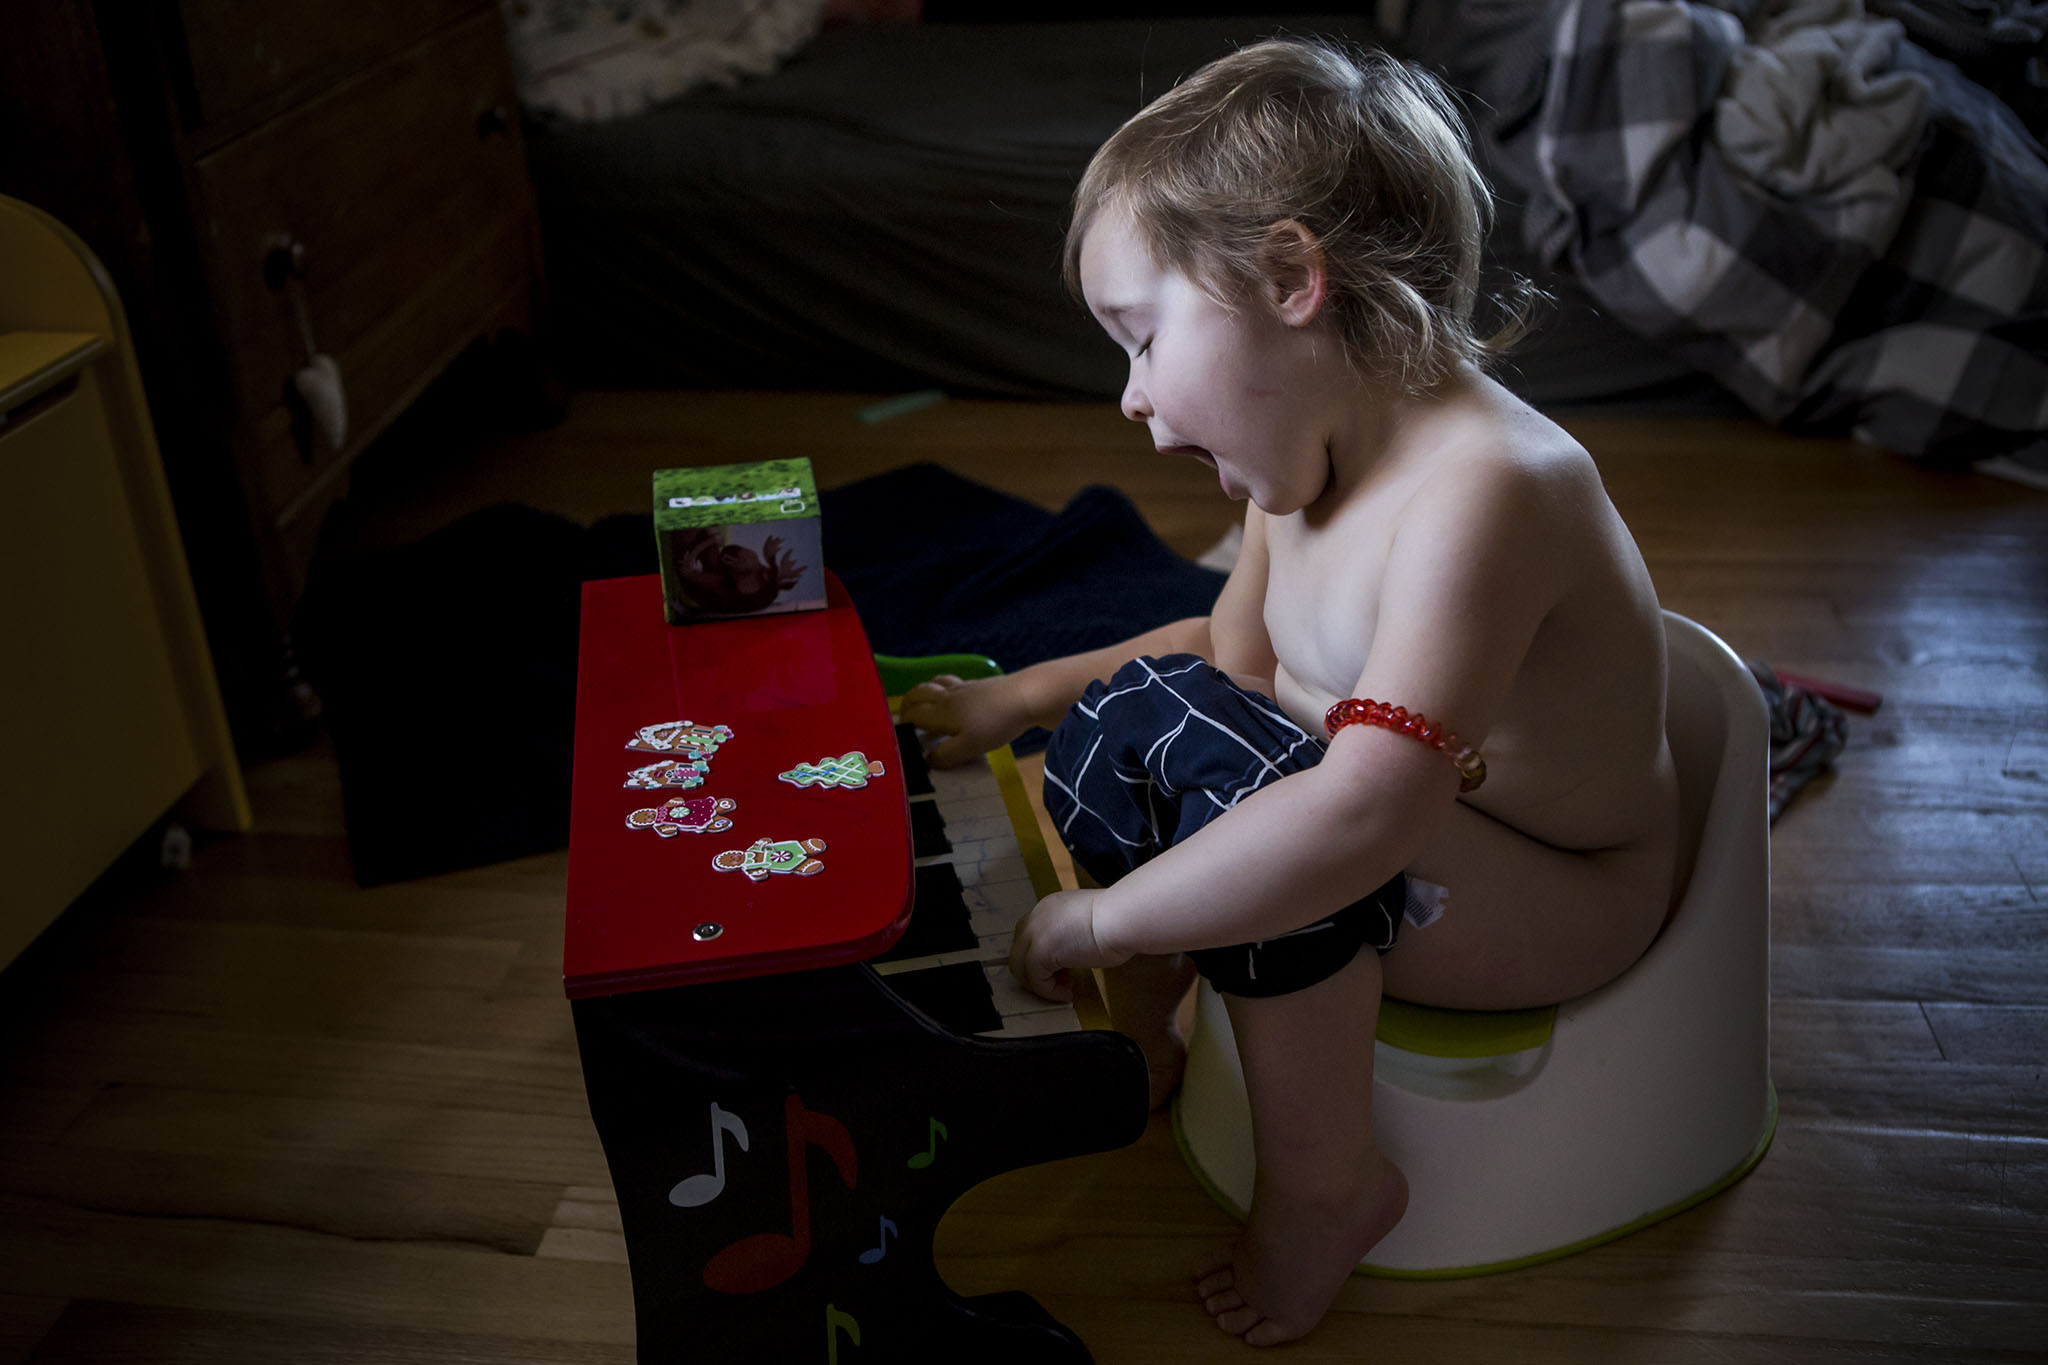 toddler potty training and playing toy piano while singing in CT